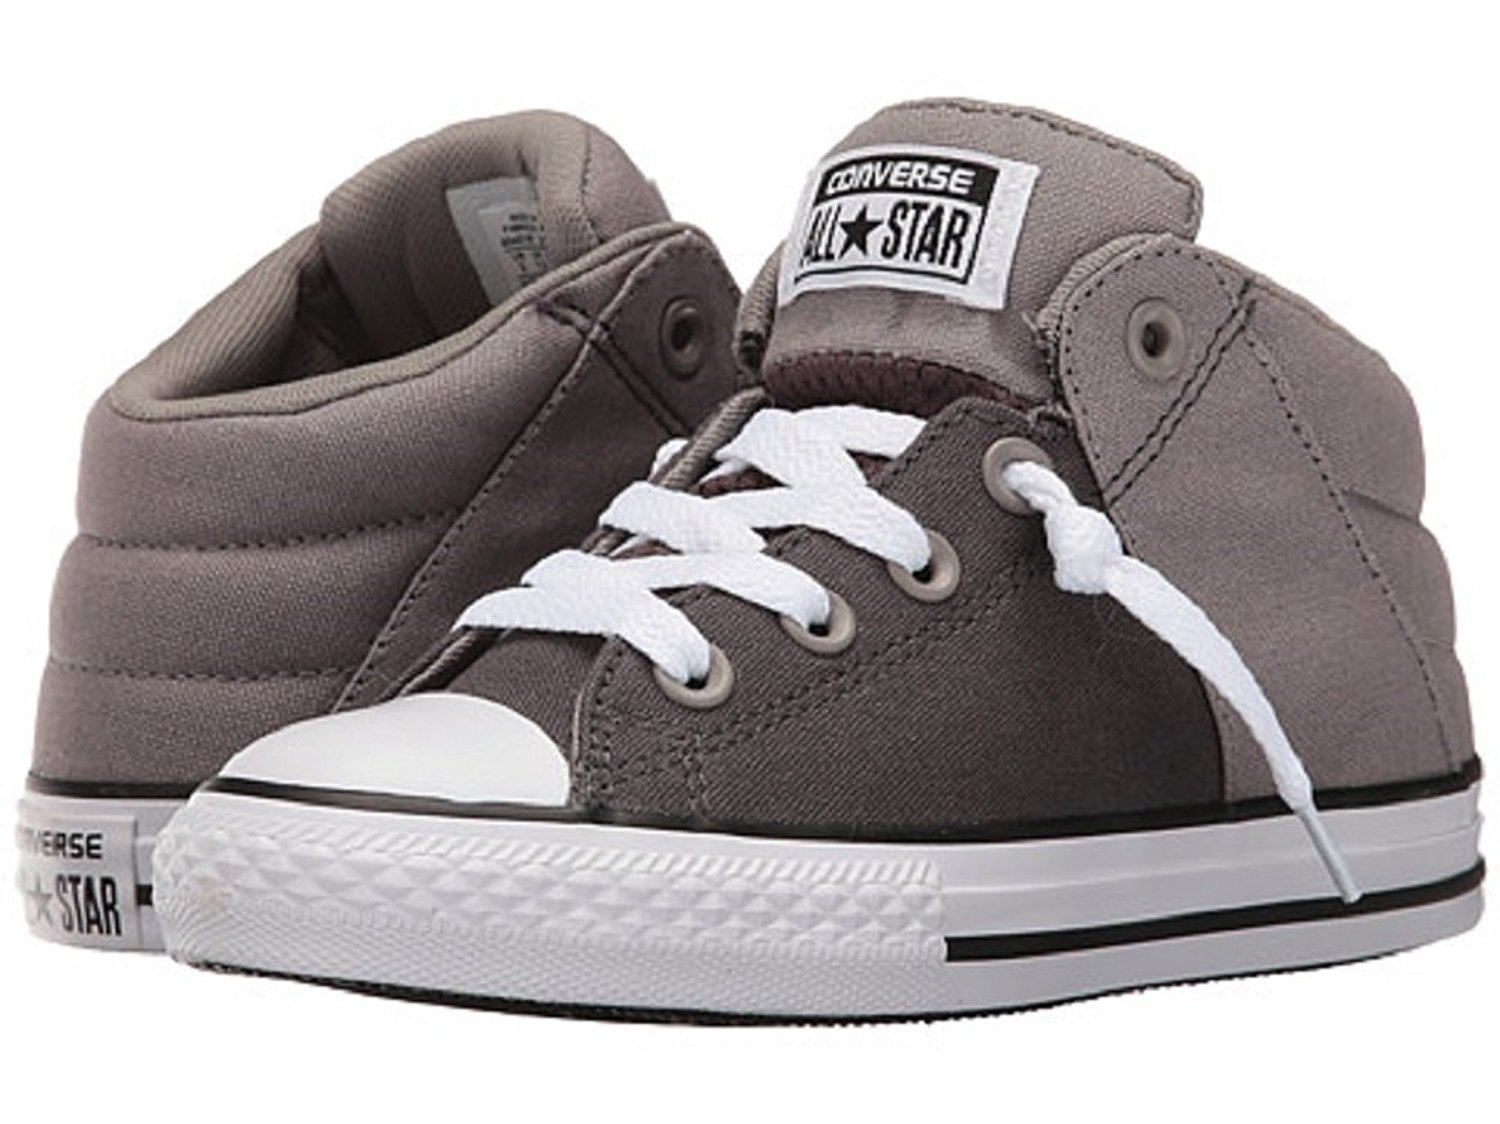 1a6053f5dad7 Buy CONVERSE Chuck Taylor All Star Axel Mid Infant Kids Trainer ...